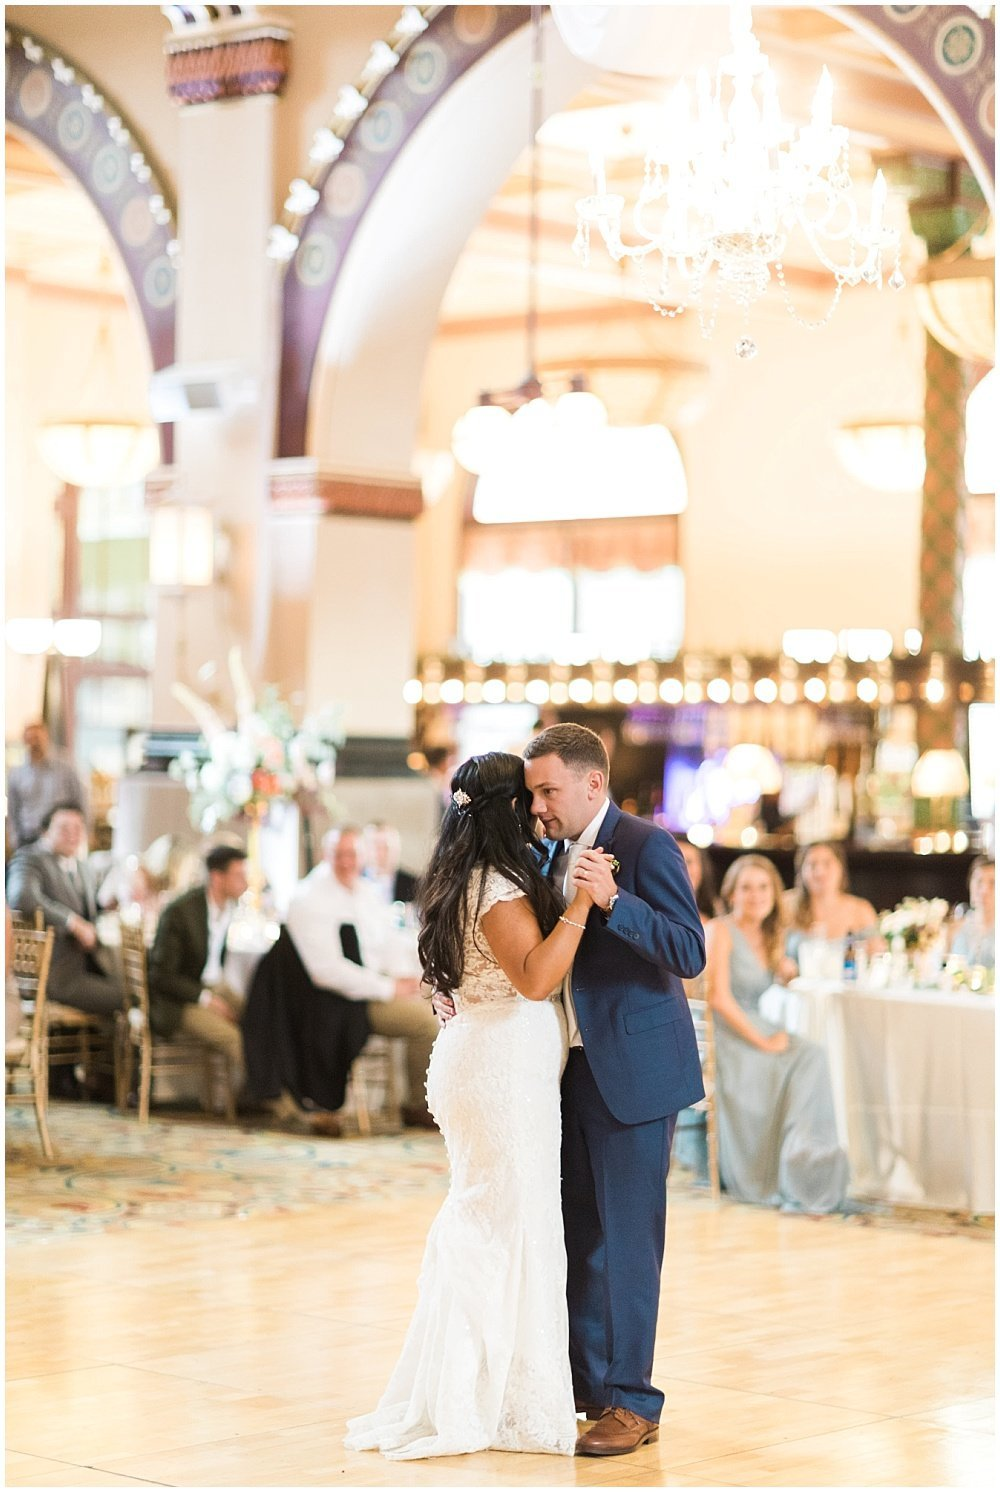 Summer-Mexican-Inspired-Gold-And-Floral-Crowne-Plaza-Indianapolis-Downtown-Union-Station-Wedding-Cory-Jackie-Wedding-Photographers-Jessica-Dum-Wedding-Coordination_photo___0045